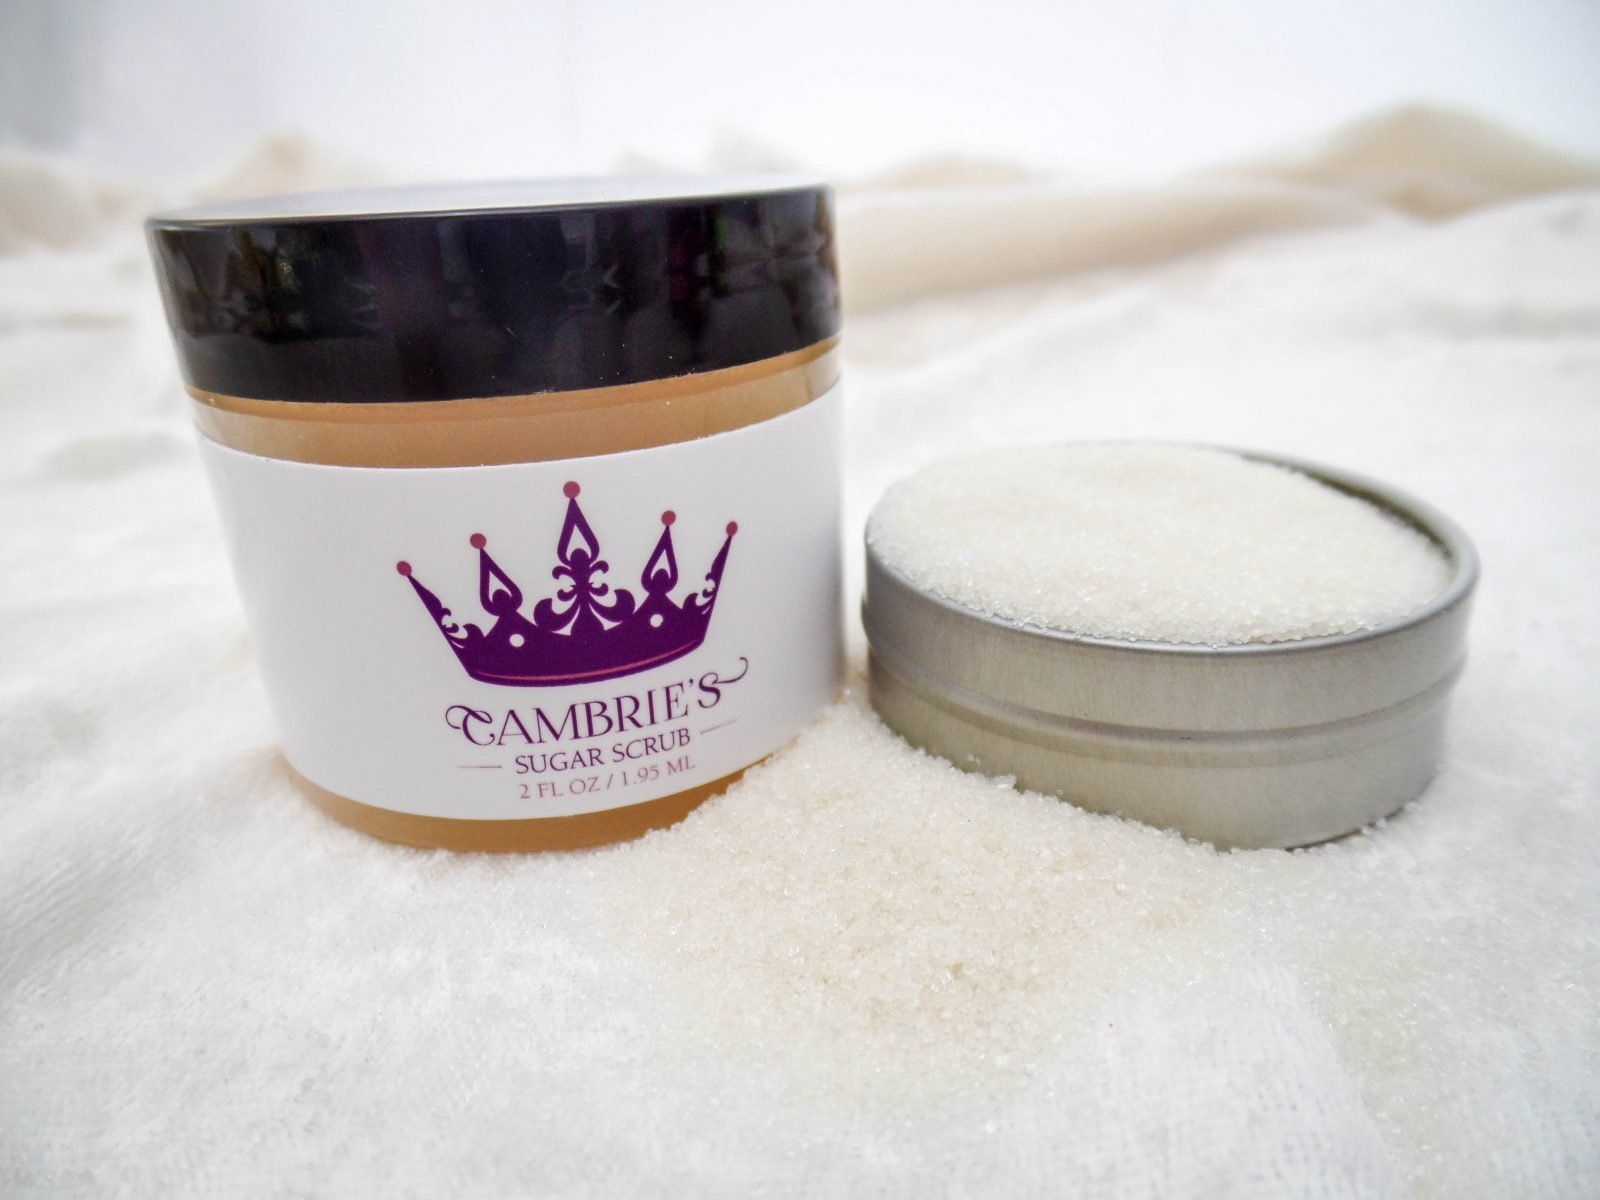 Cambries Sugar Scrub Label